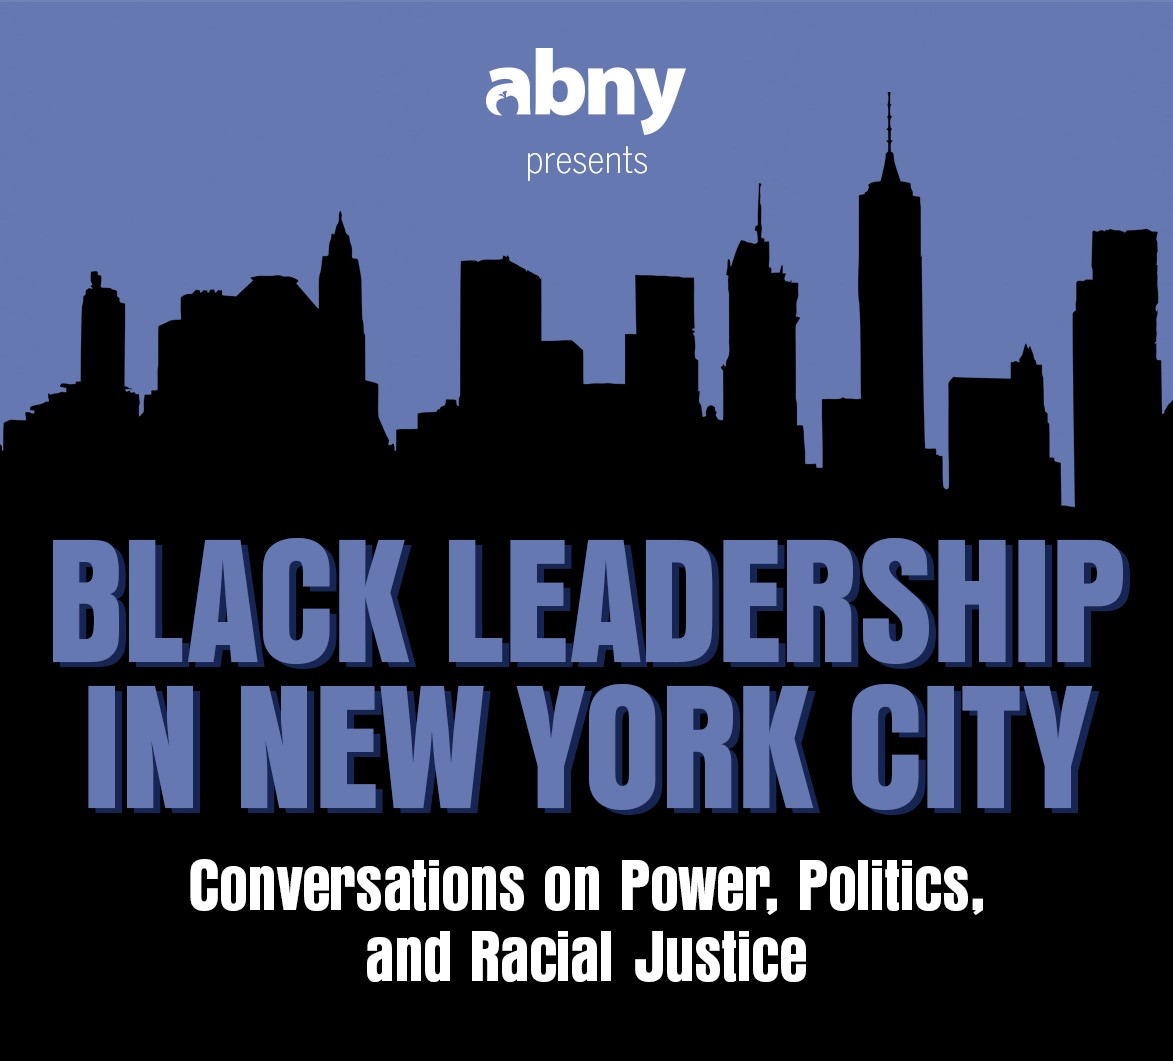 Office Of The Public Advocate Jumaane D Williams On Twitter Public Advocate Williams Will Join Abnycensus2020 To Kick Off A New Series On Racial Justice Aiming To Make Our City More Just